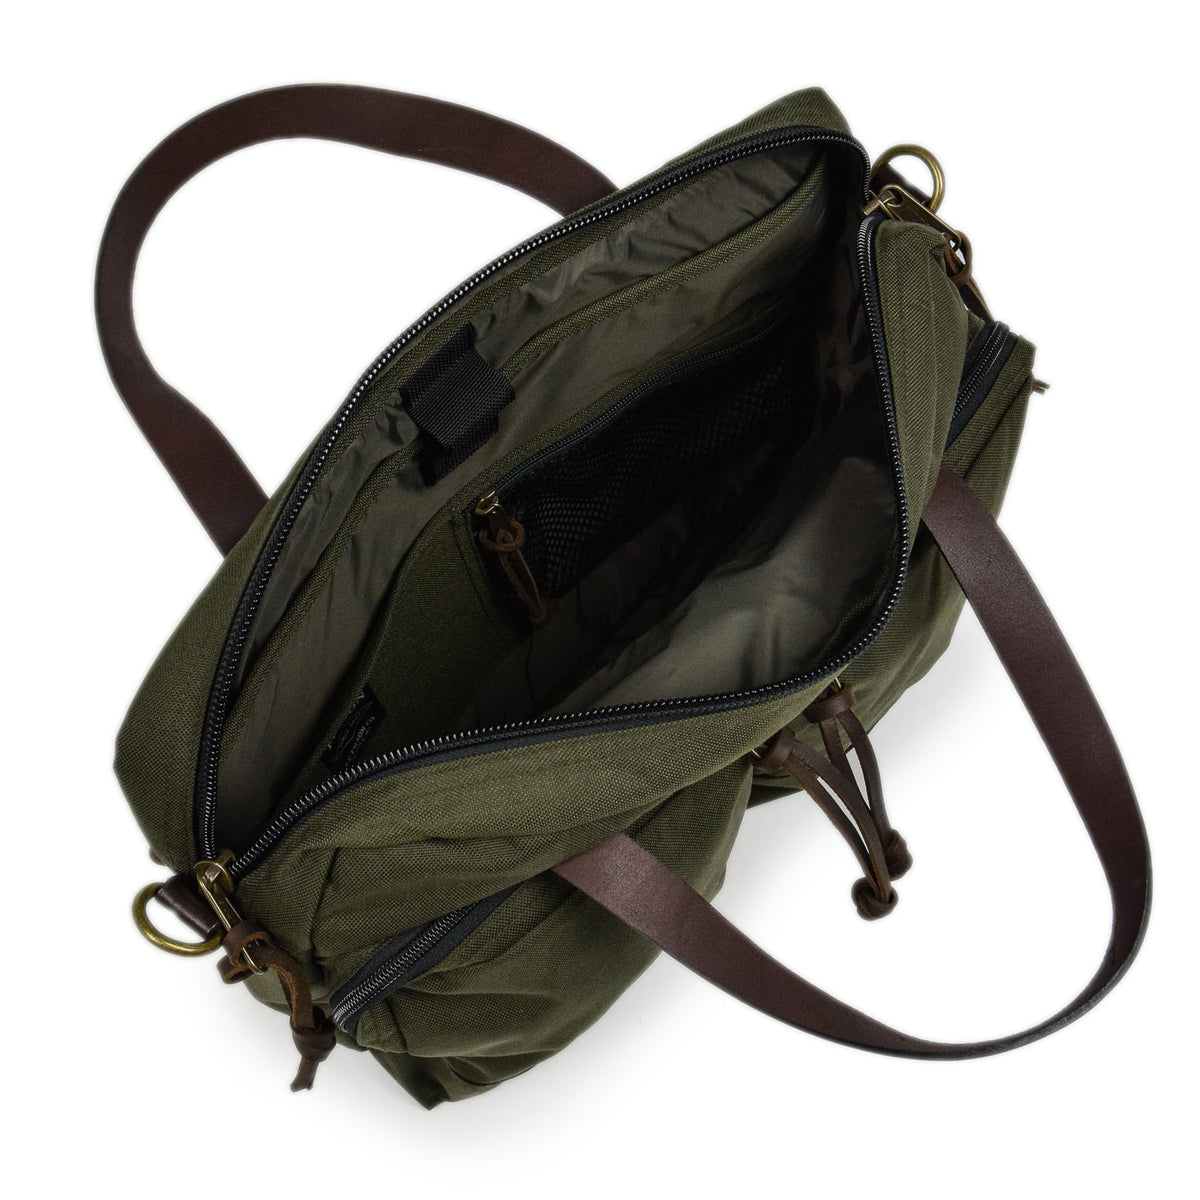 Filson Dryden Briefcase Shoulder Bag Otter Green Open Bag